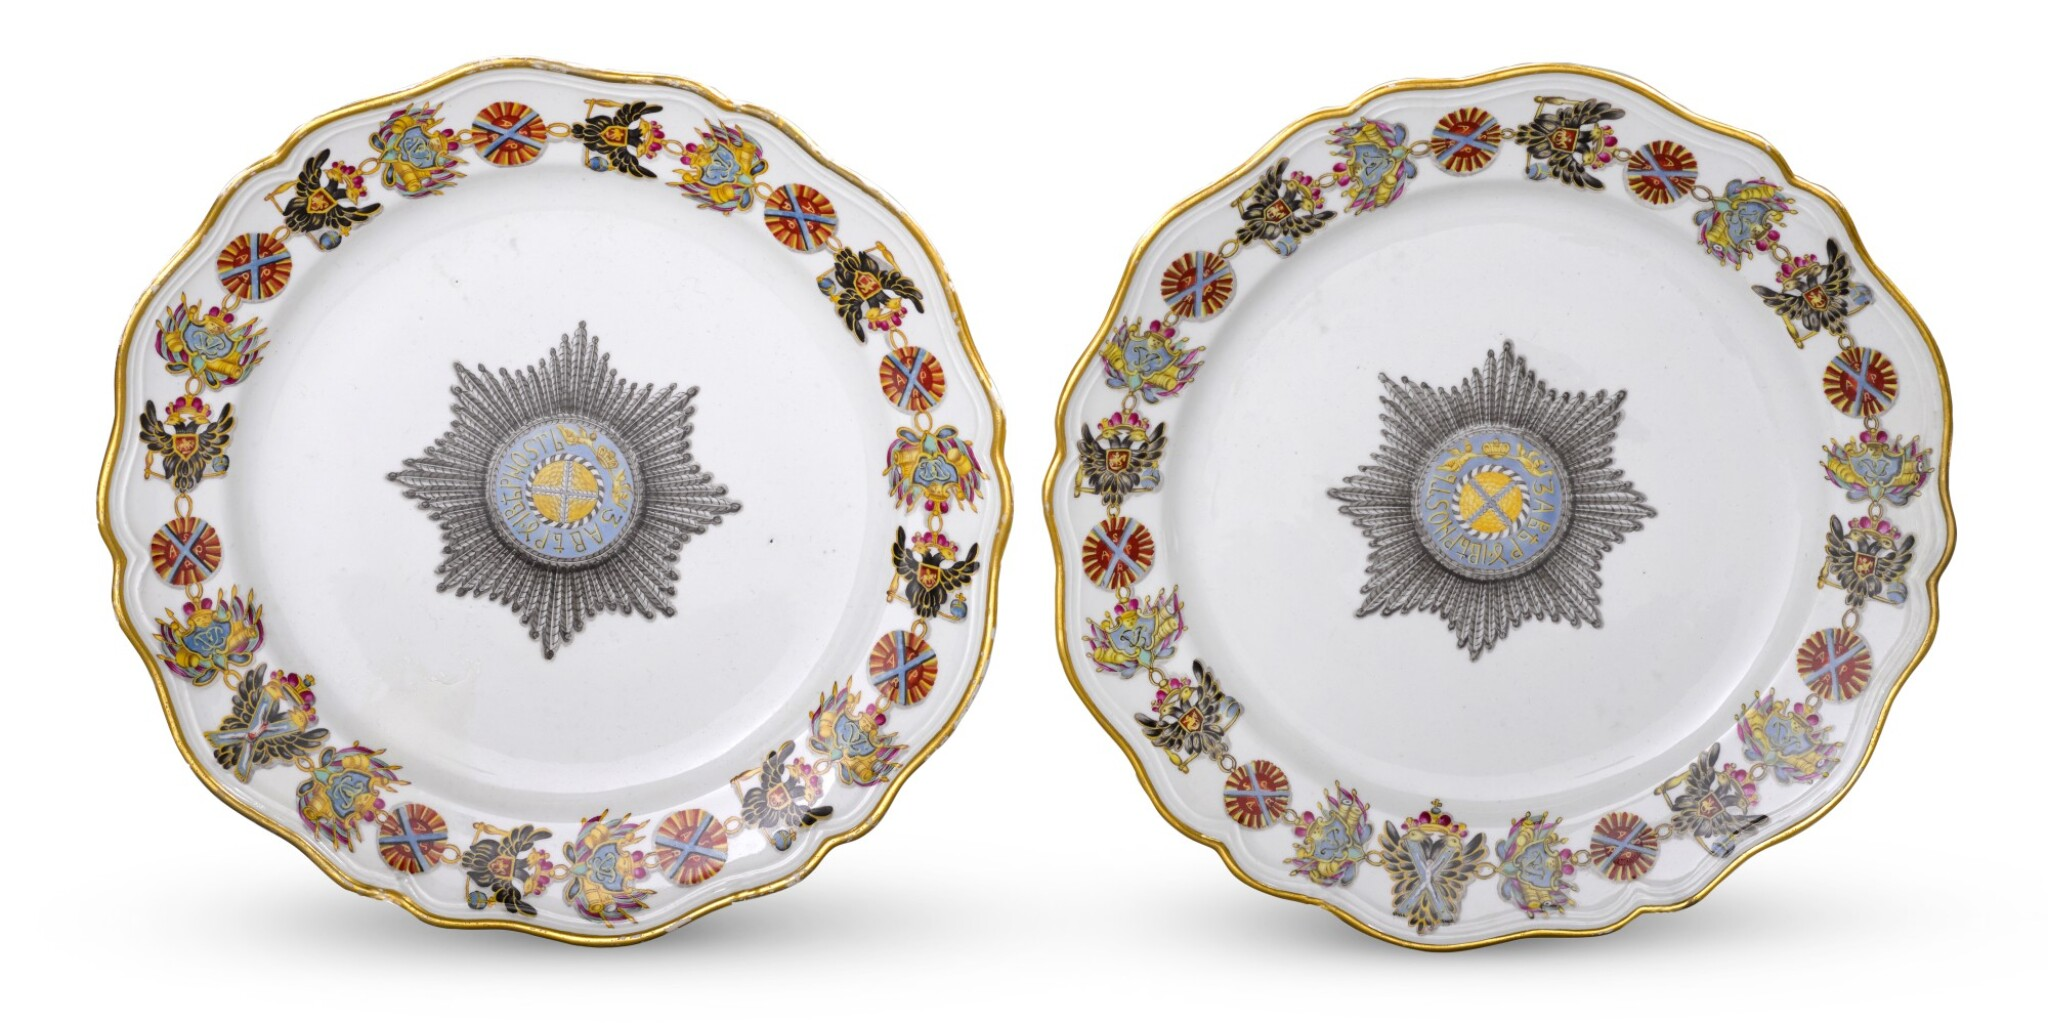 View full screen - View 1 of Lot 117. Two Porcelain Plates from the Service for the Imperial Order Of St Andrew, Gardner Porcelain Factory, Verbilki, circa 1780.